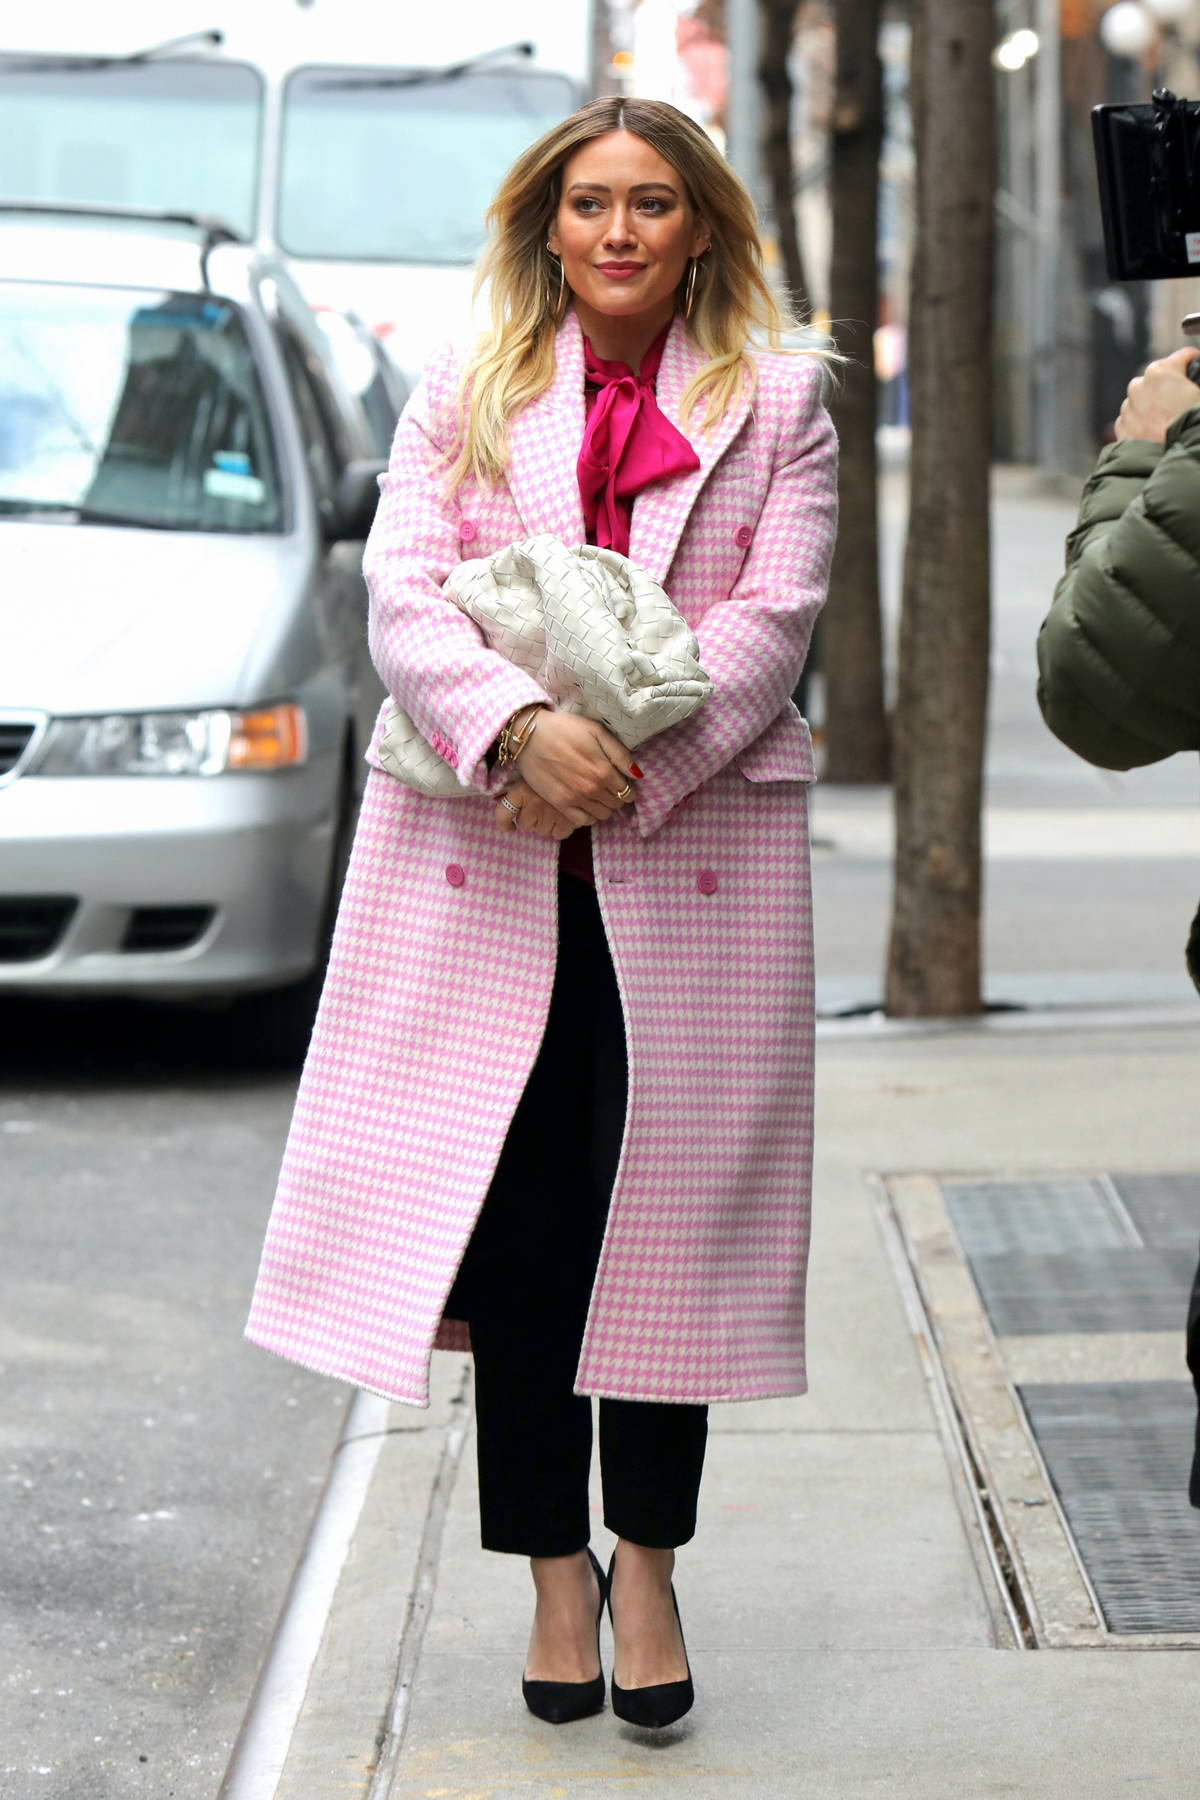 Hilary Duff looks pretty in pink while filming scenes for 'Younger' in Manhattan, New York City